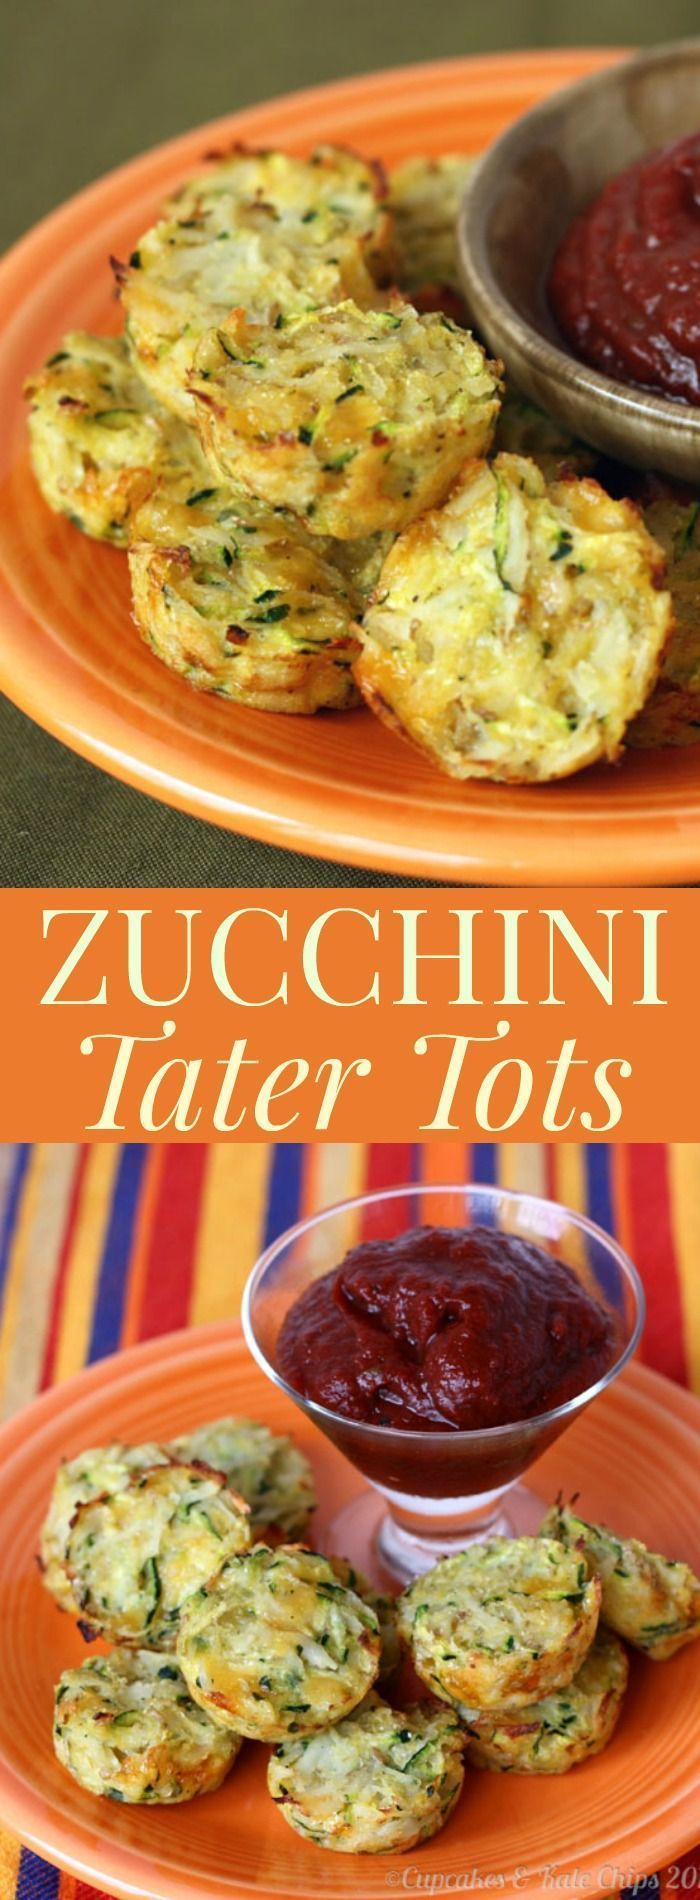 Zucchini Tater Tots - a healthy, homemade side dish that's a kid-friendly recipe with some extra veggies! Gluten free. | http://cupcakesandkalechips.com